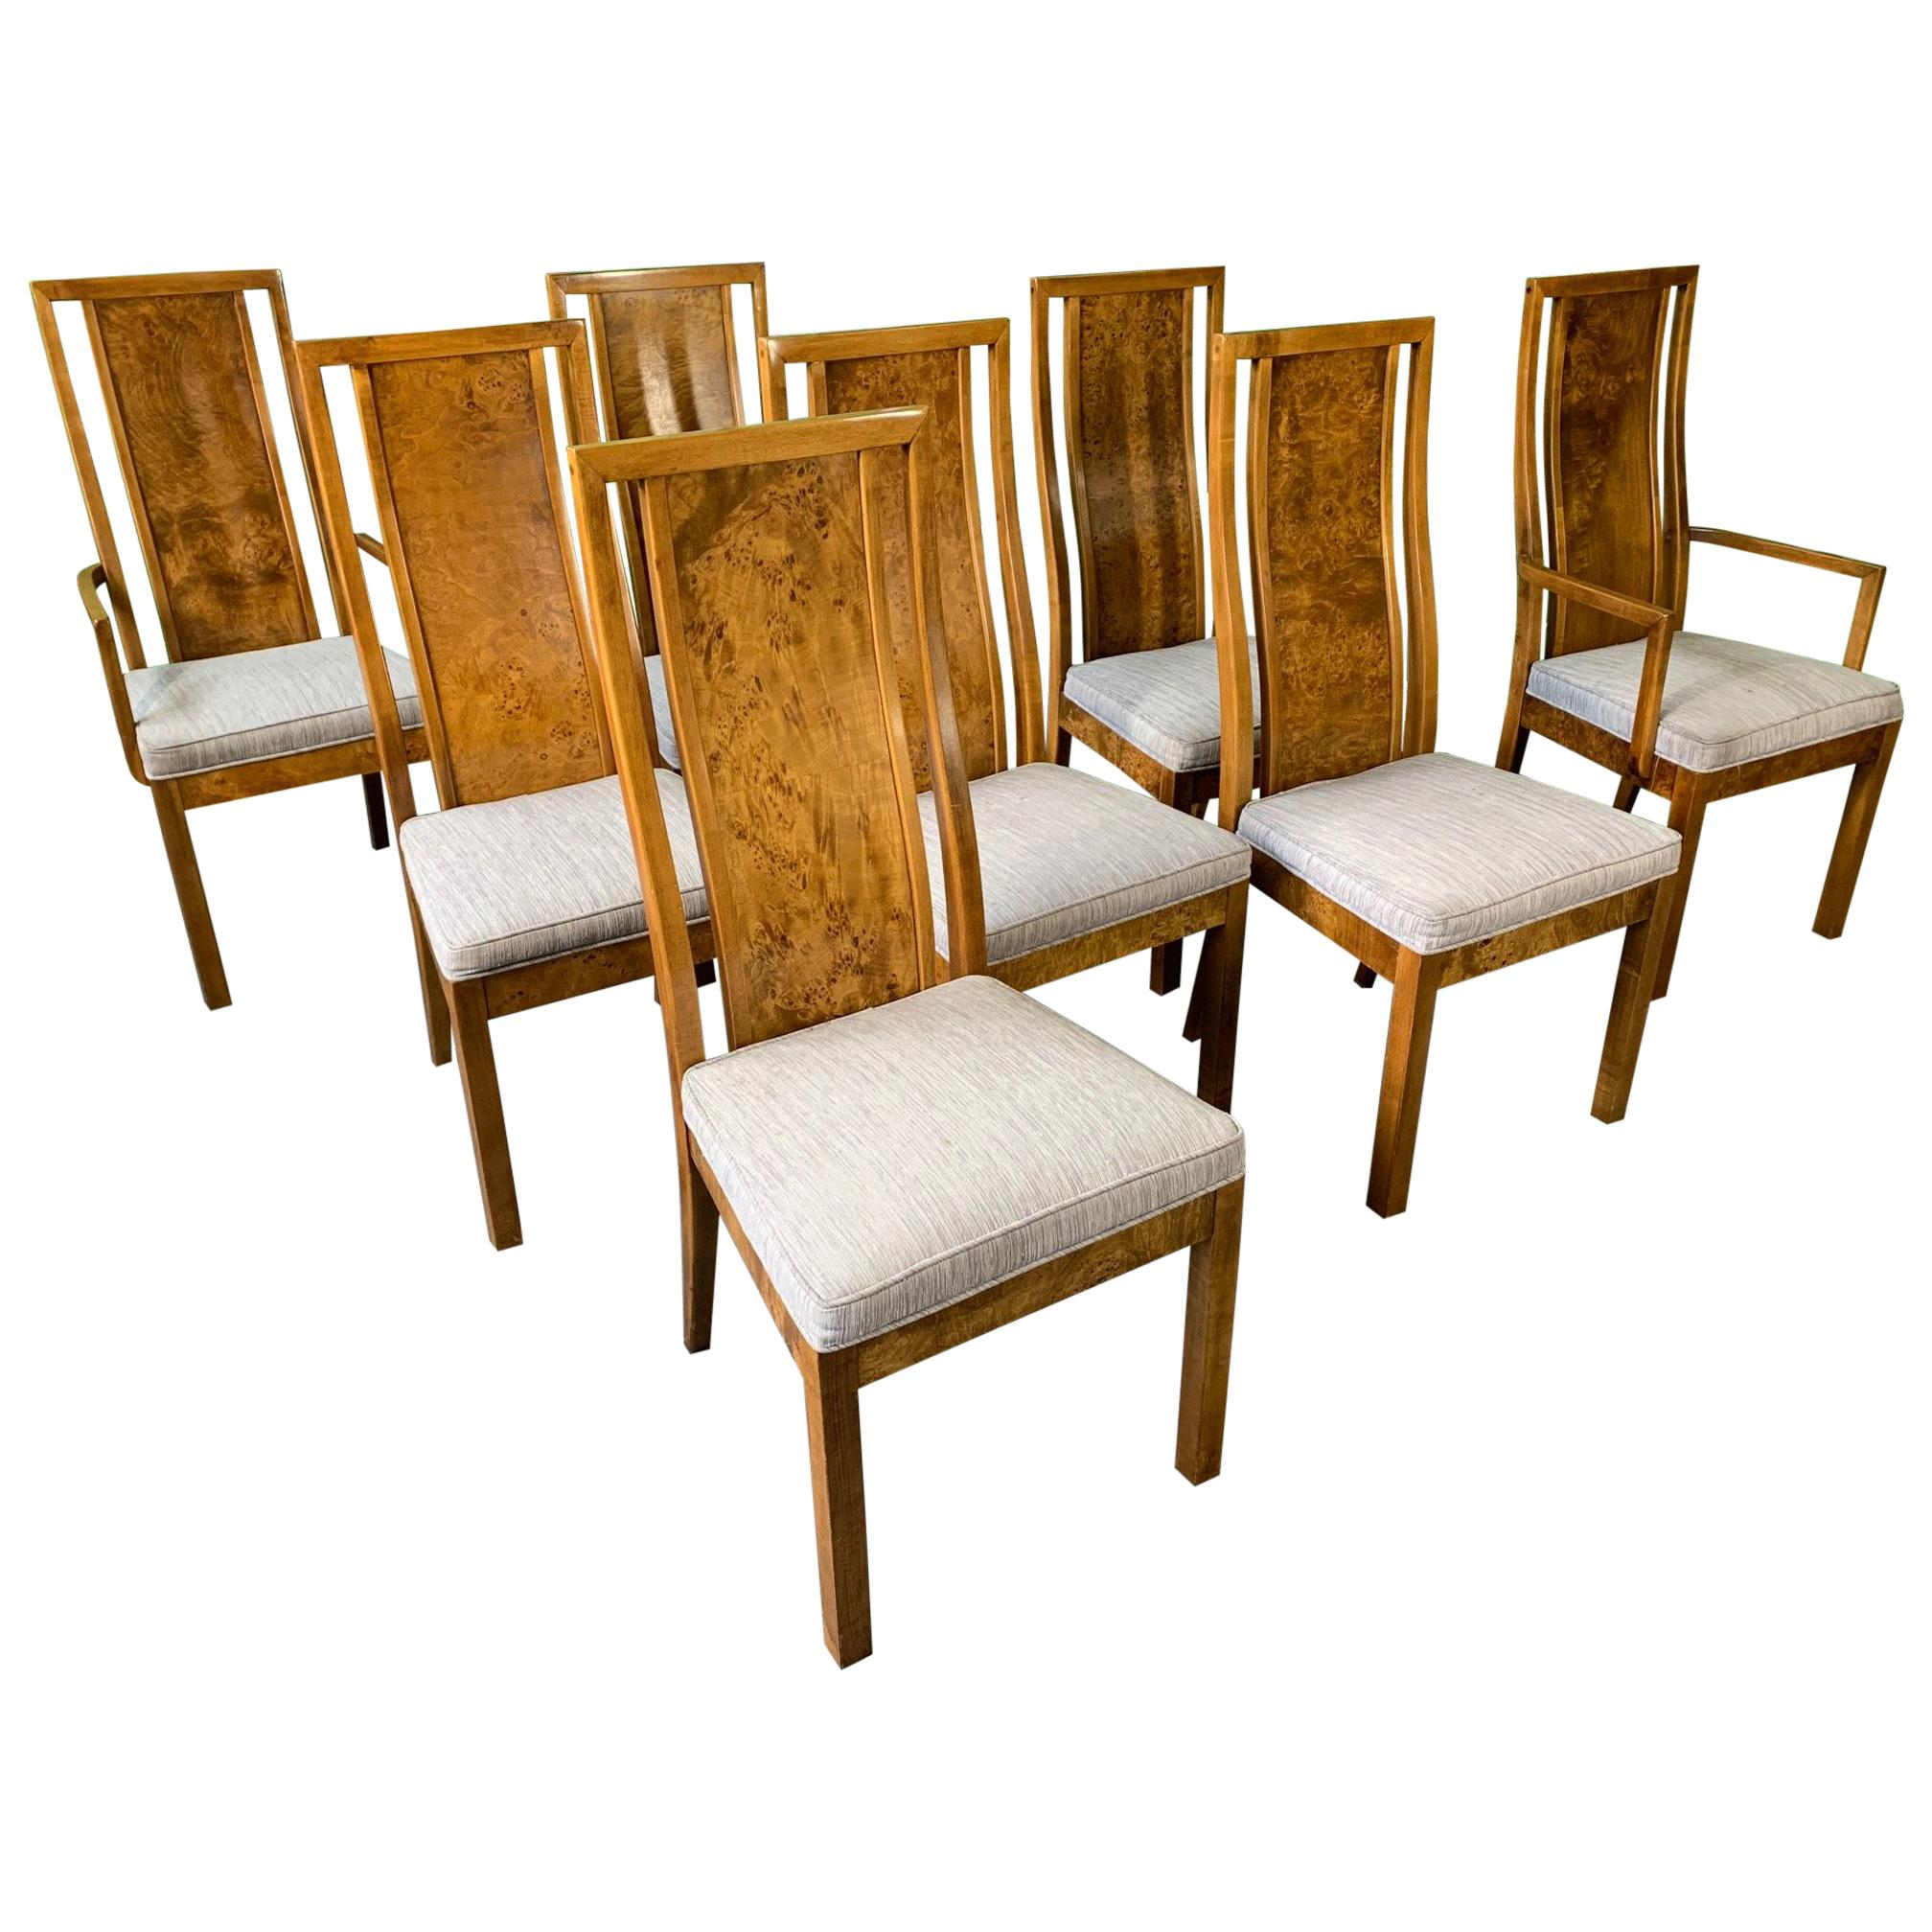 burl wood dining chairs by founders furniture in the manner of milo rh 1stdibs com Burlwood Dining Chairs Burlwood Art Deco Chair